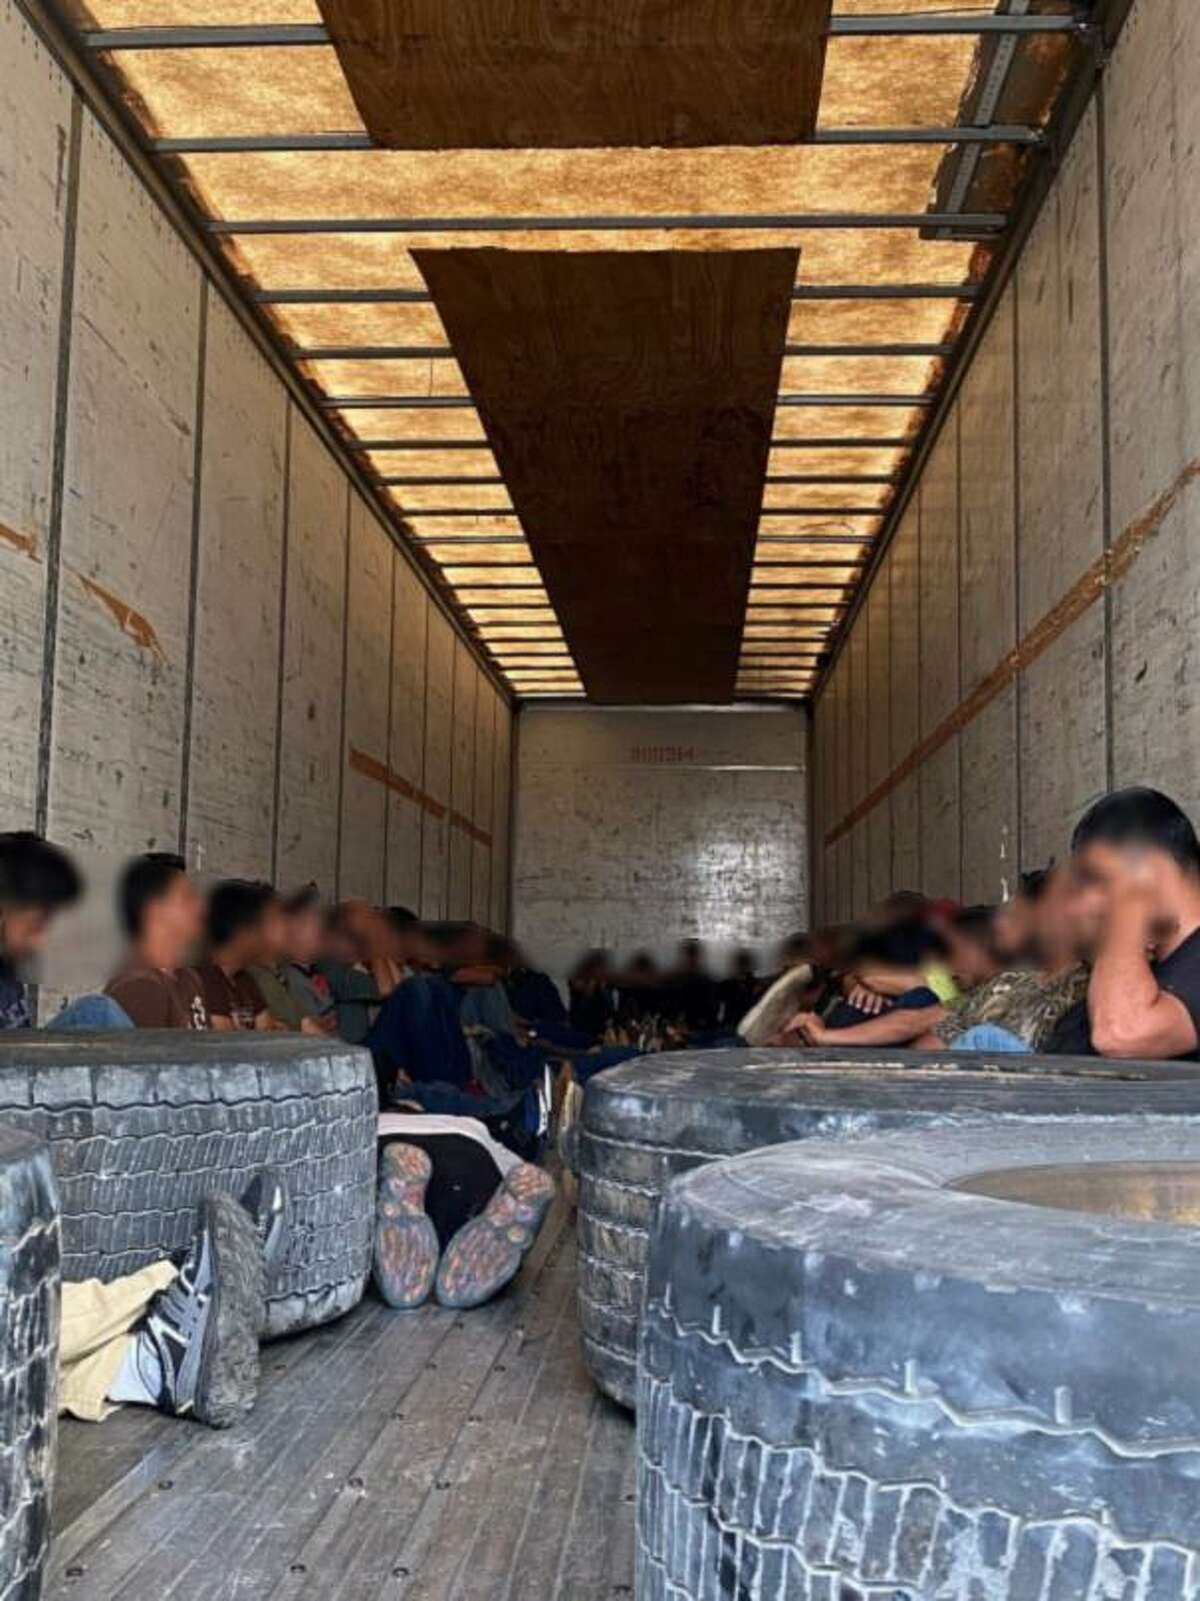 U.S. Border Patrol said they discovered 54 people, including two juveniles, inside a trailer. The human smuggling attempt occurred on Monday at the checkpoint on Interstate 35.